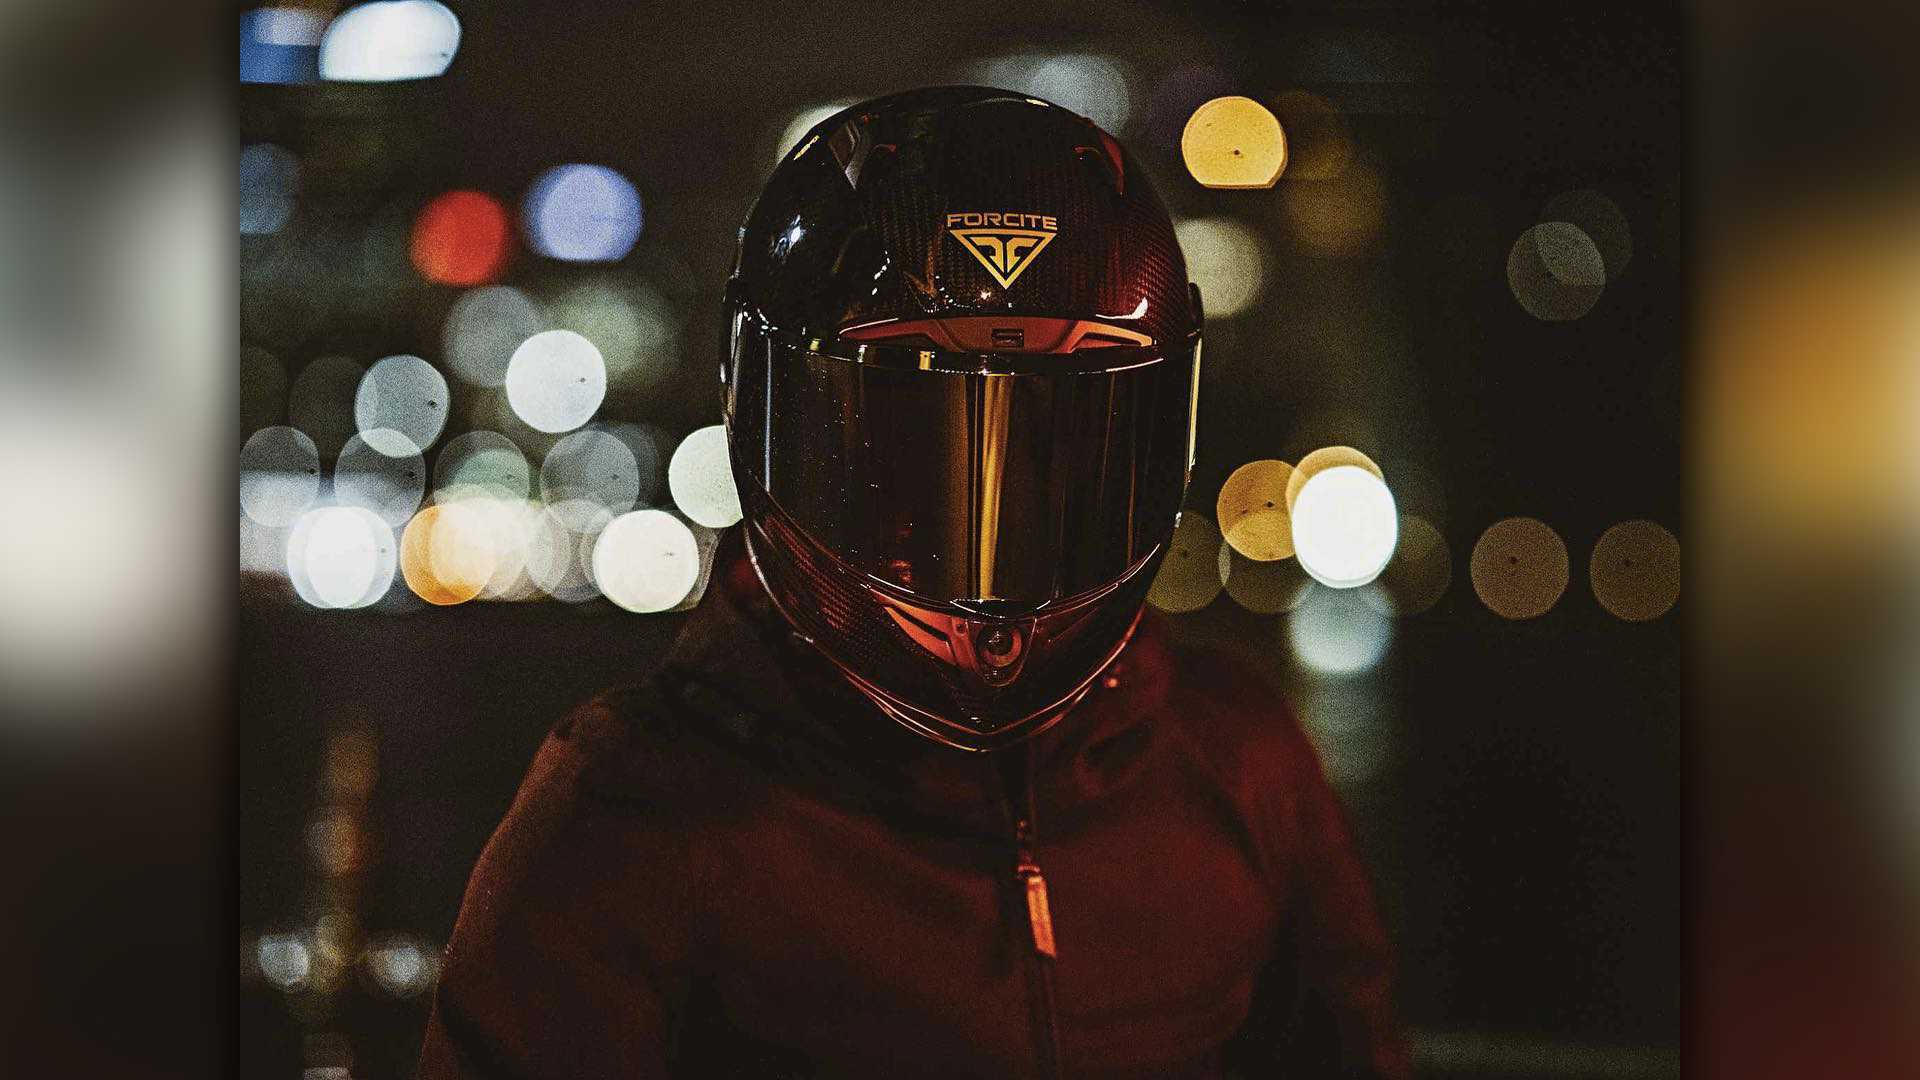 Forcite's MK1 Smart Helmet Finally Coming To The U.S.